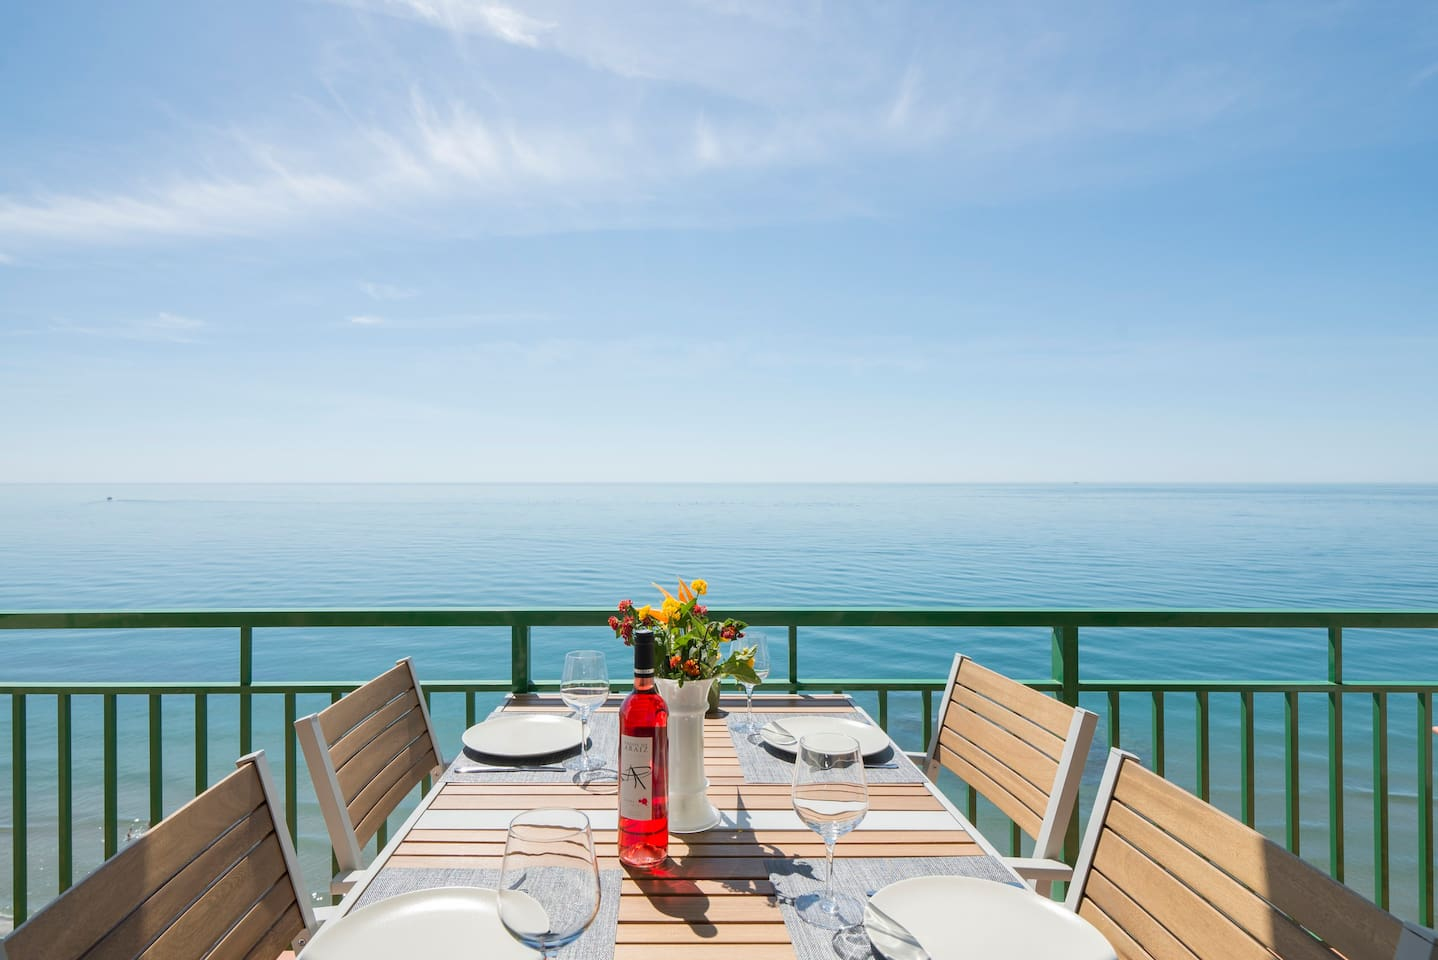 Dine in style on the spacious terrace